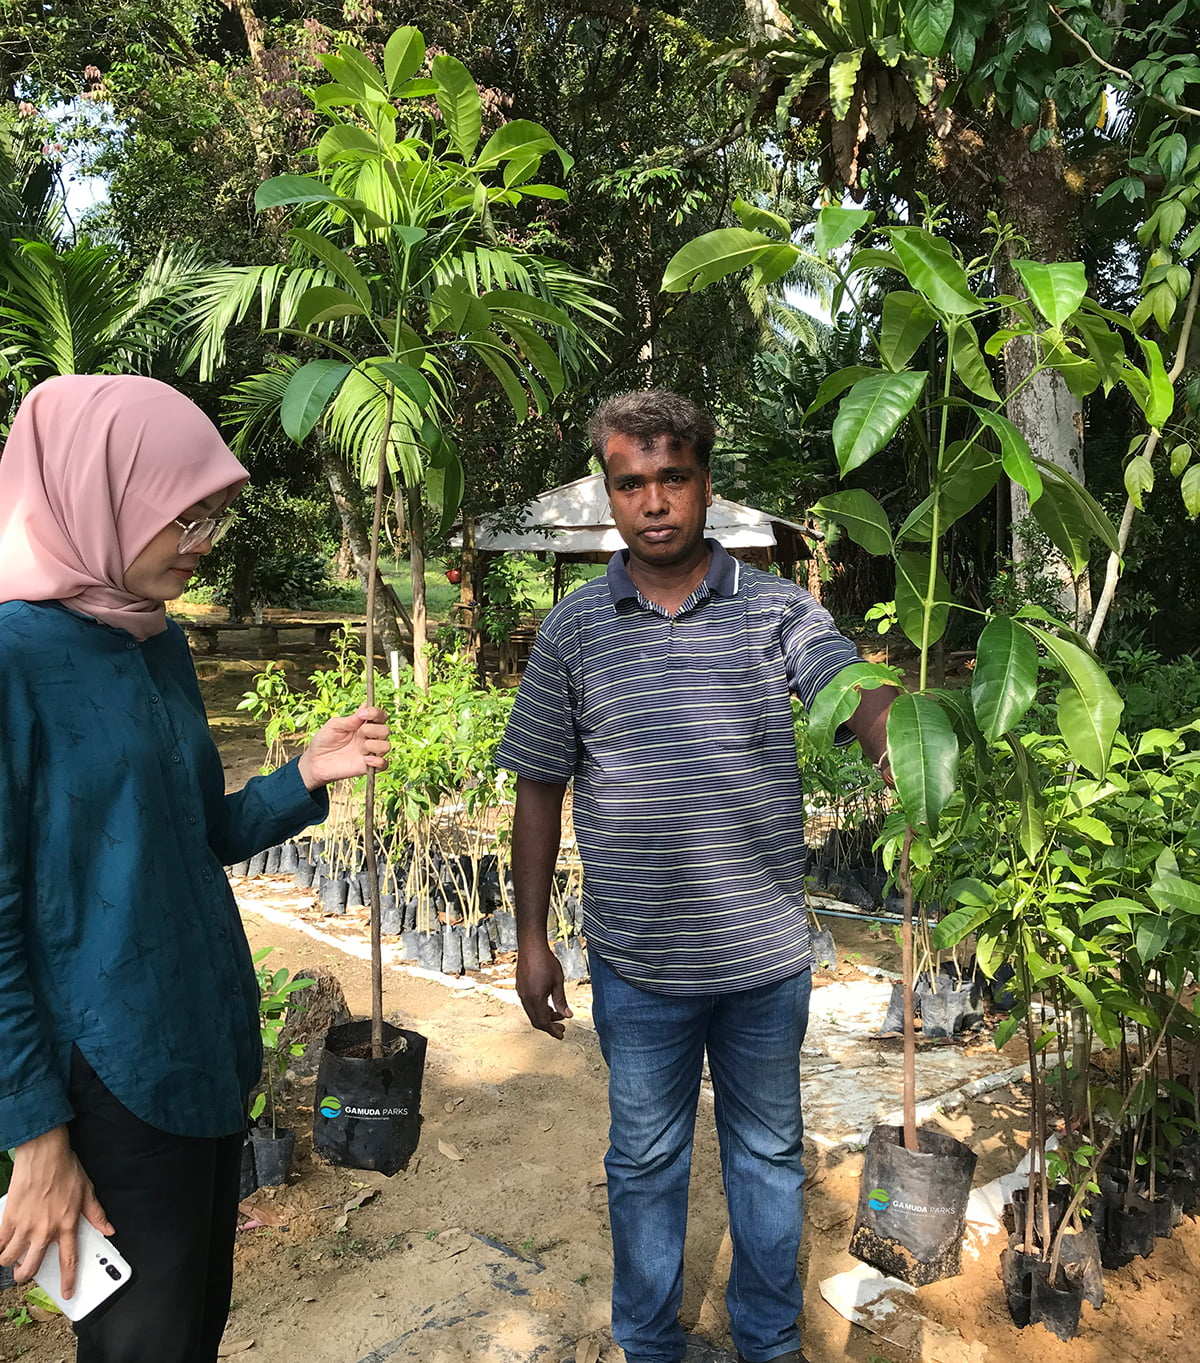 The establishment of an indigenous nursery in Pulau Kempas helps generate sustainable income for the Temuan community.